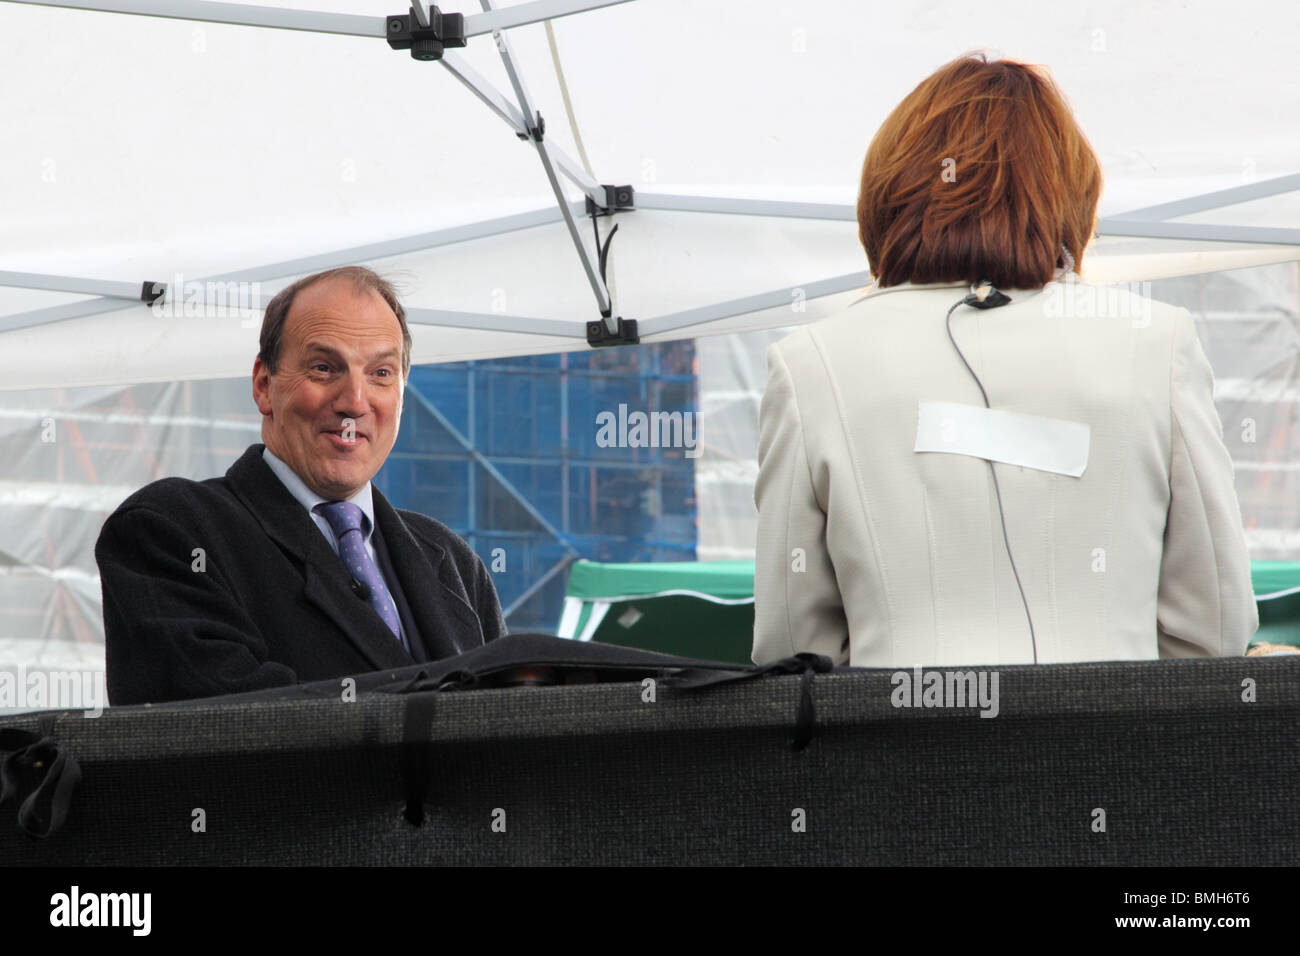 Liberal Democrat MP Simon Hughes giving TV interview on College Green, Westminster, London. - Stock Image